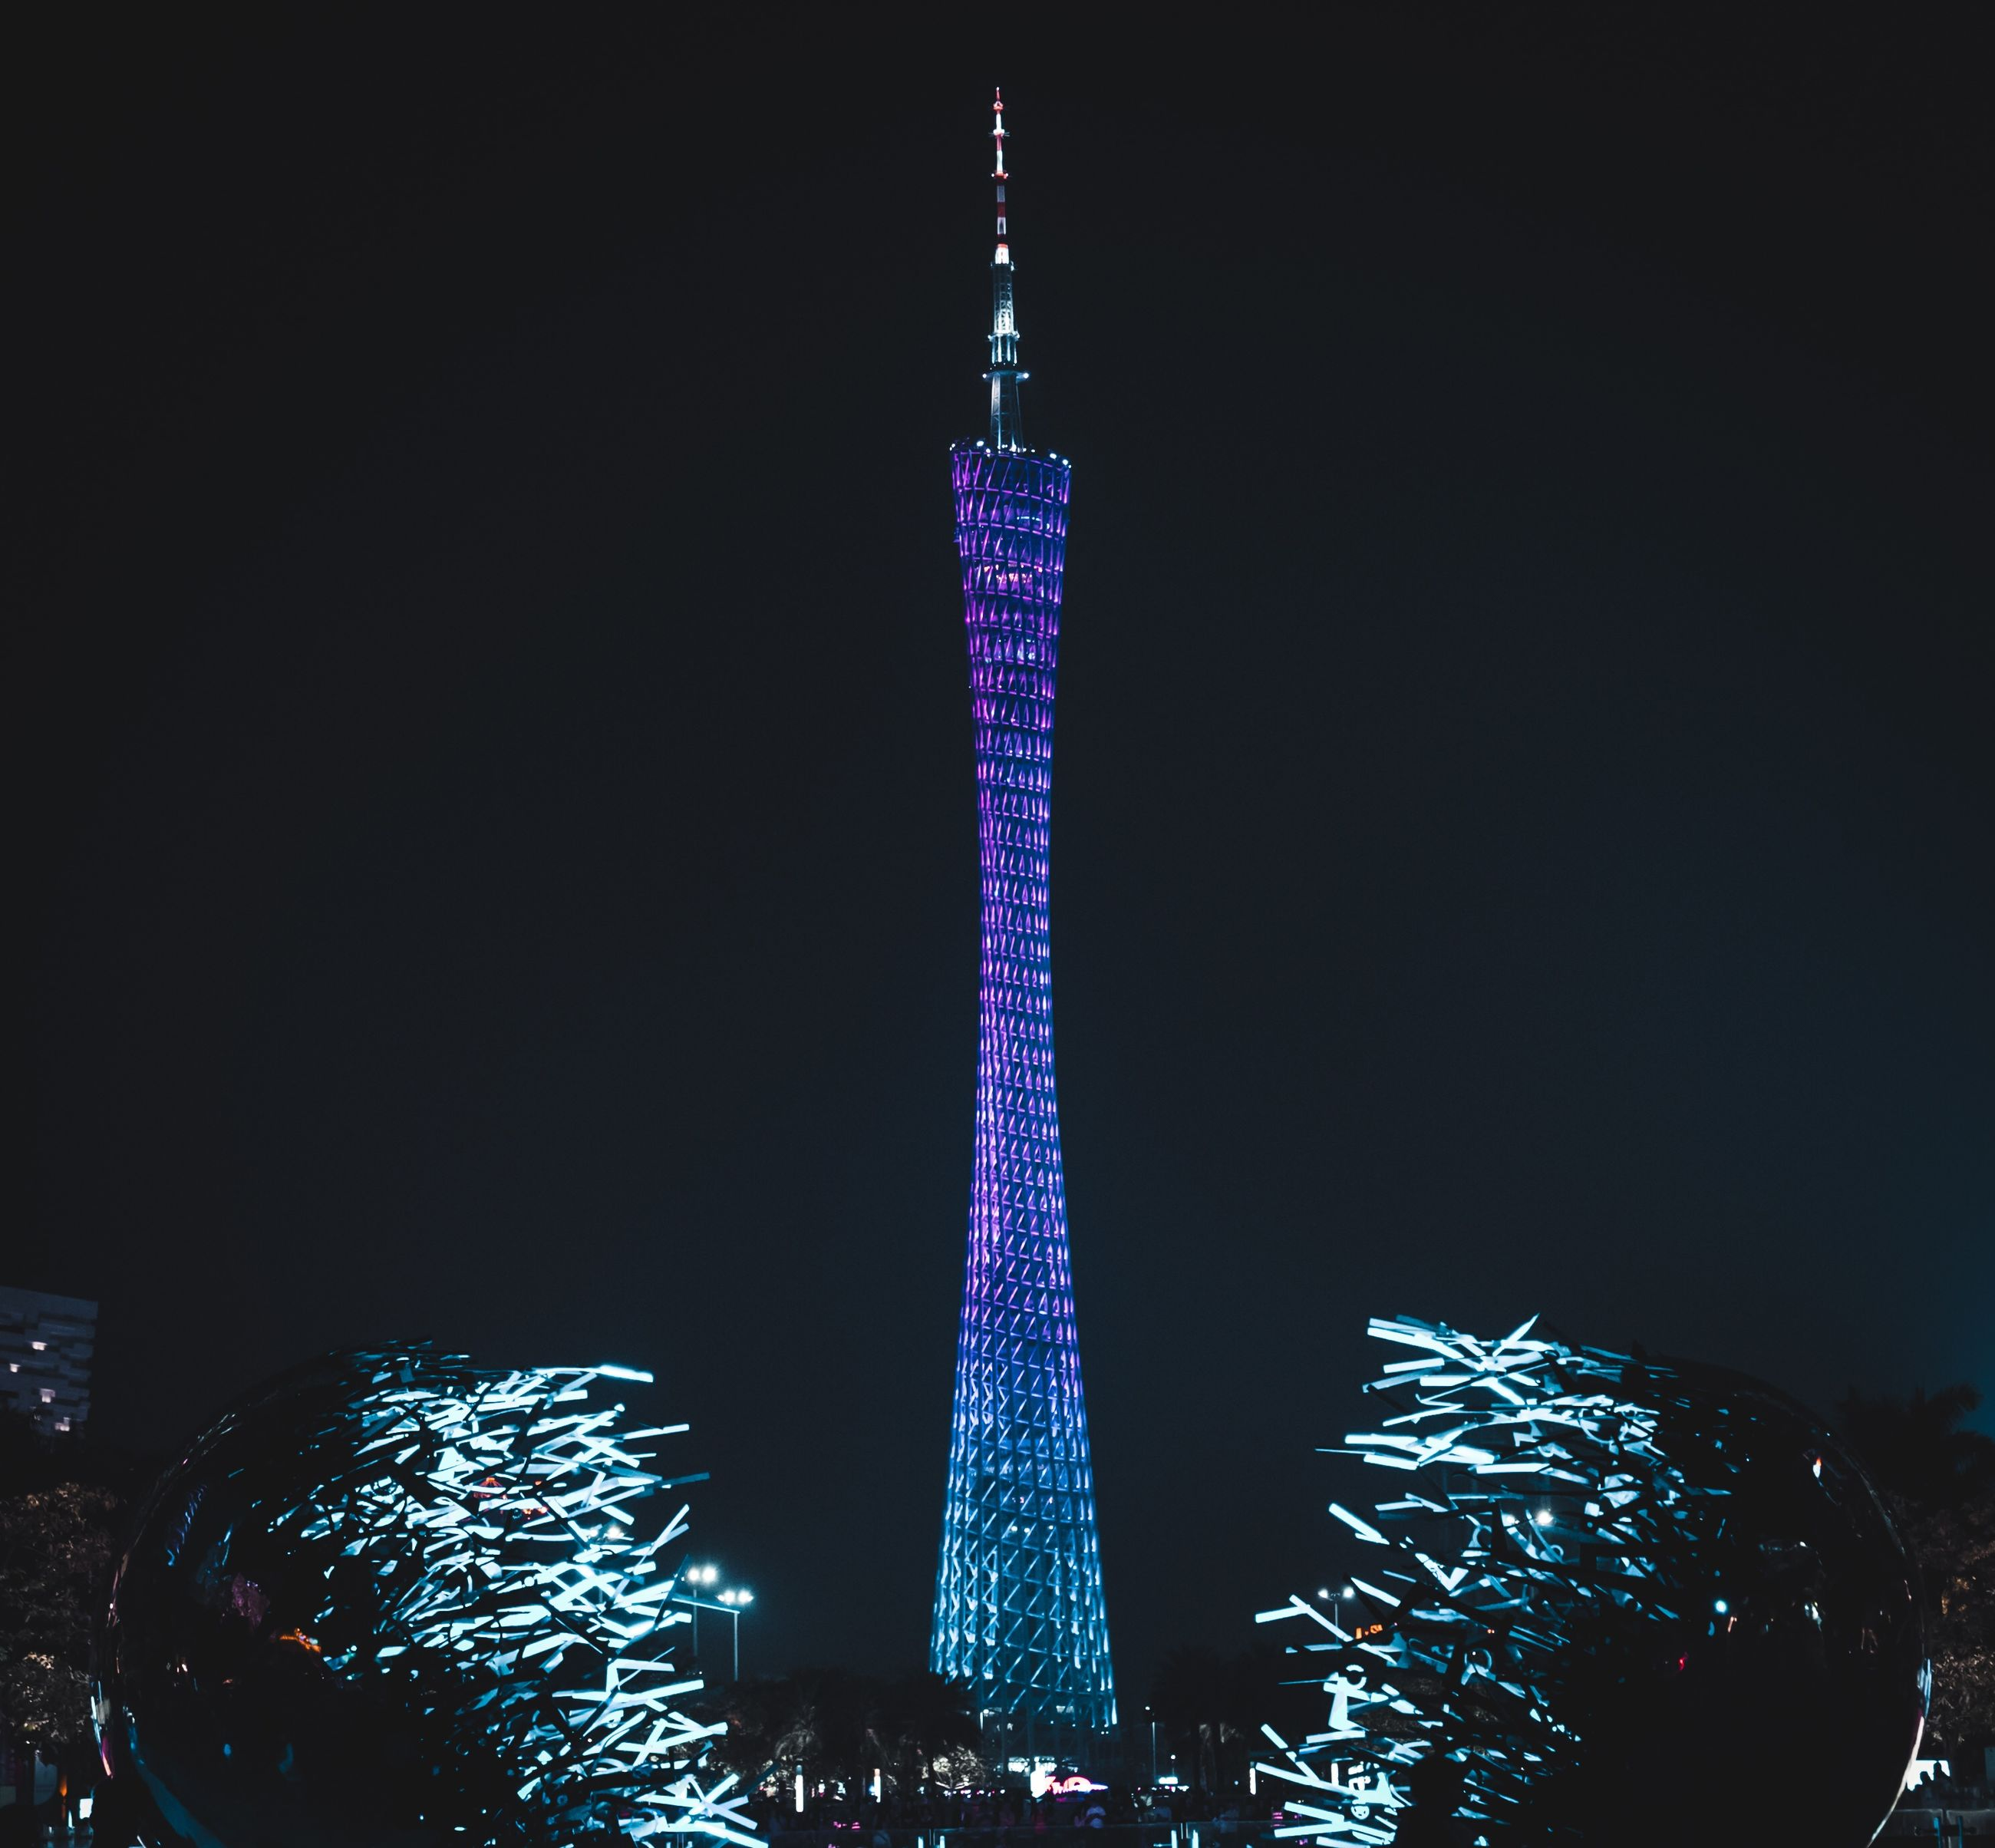 night, illuminated, architecture, tall - high, built structure, travel destinations, travel, sky, tower, city, tourism, celebration, decoration, copy space, no people, nature, holiday, building exterior, christmas tree, christmas, outdoors, skyscraper, purple, office building exterior, christmas ornament